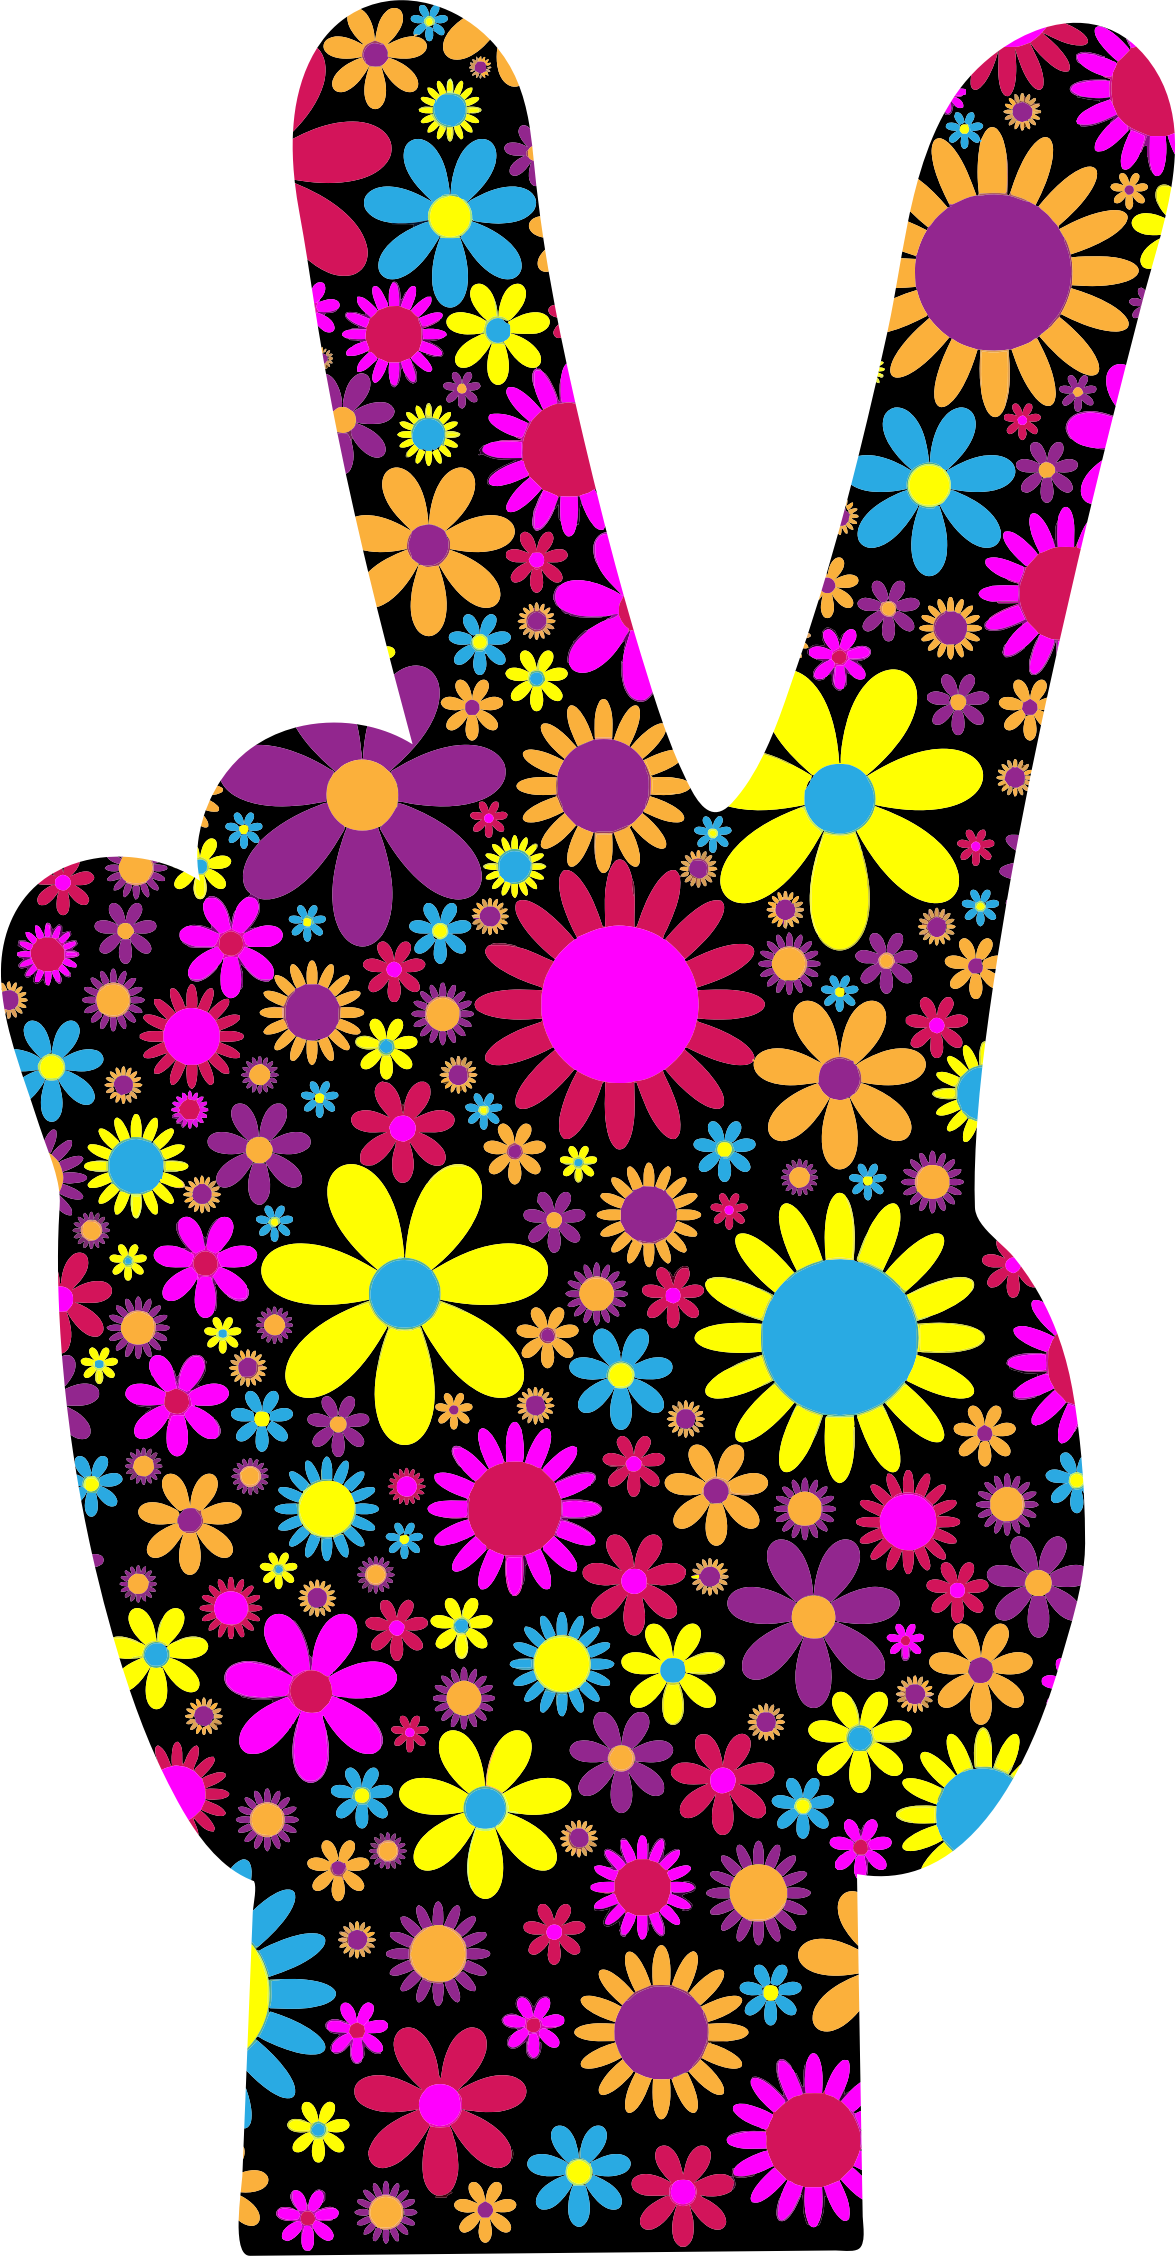 Floral Peace Hand Sign by GDJ